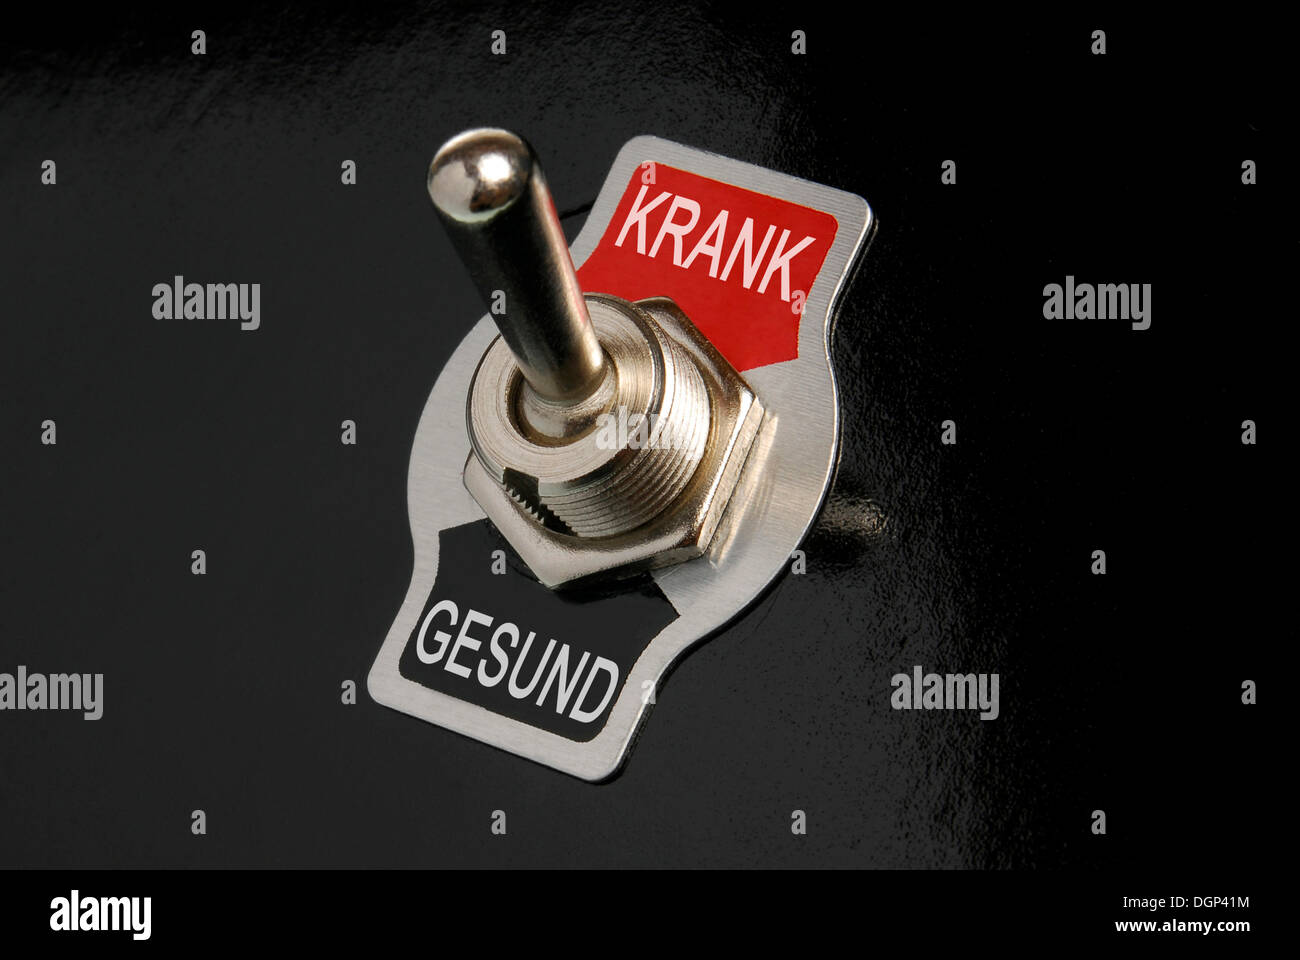 Toggle switch, labelled Krank and Gesund, German for sick and healthy, symbolic image - Stock Image